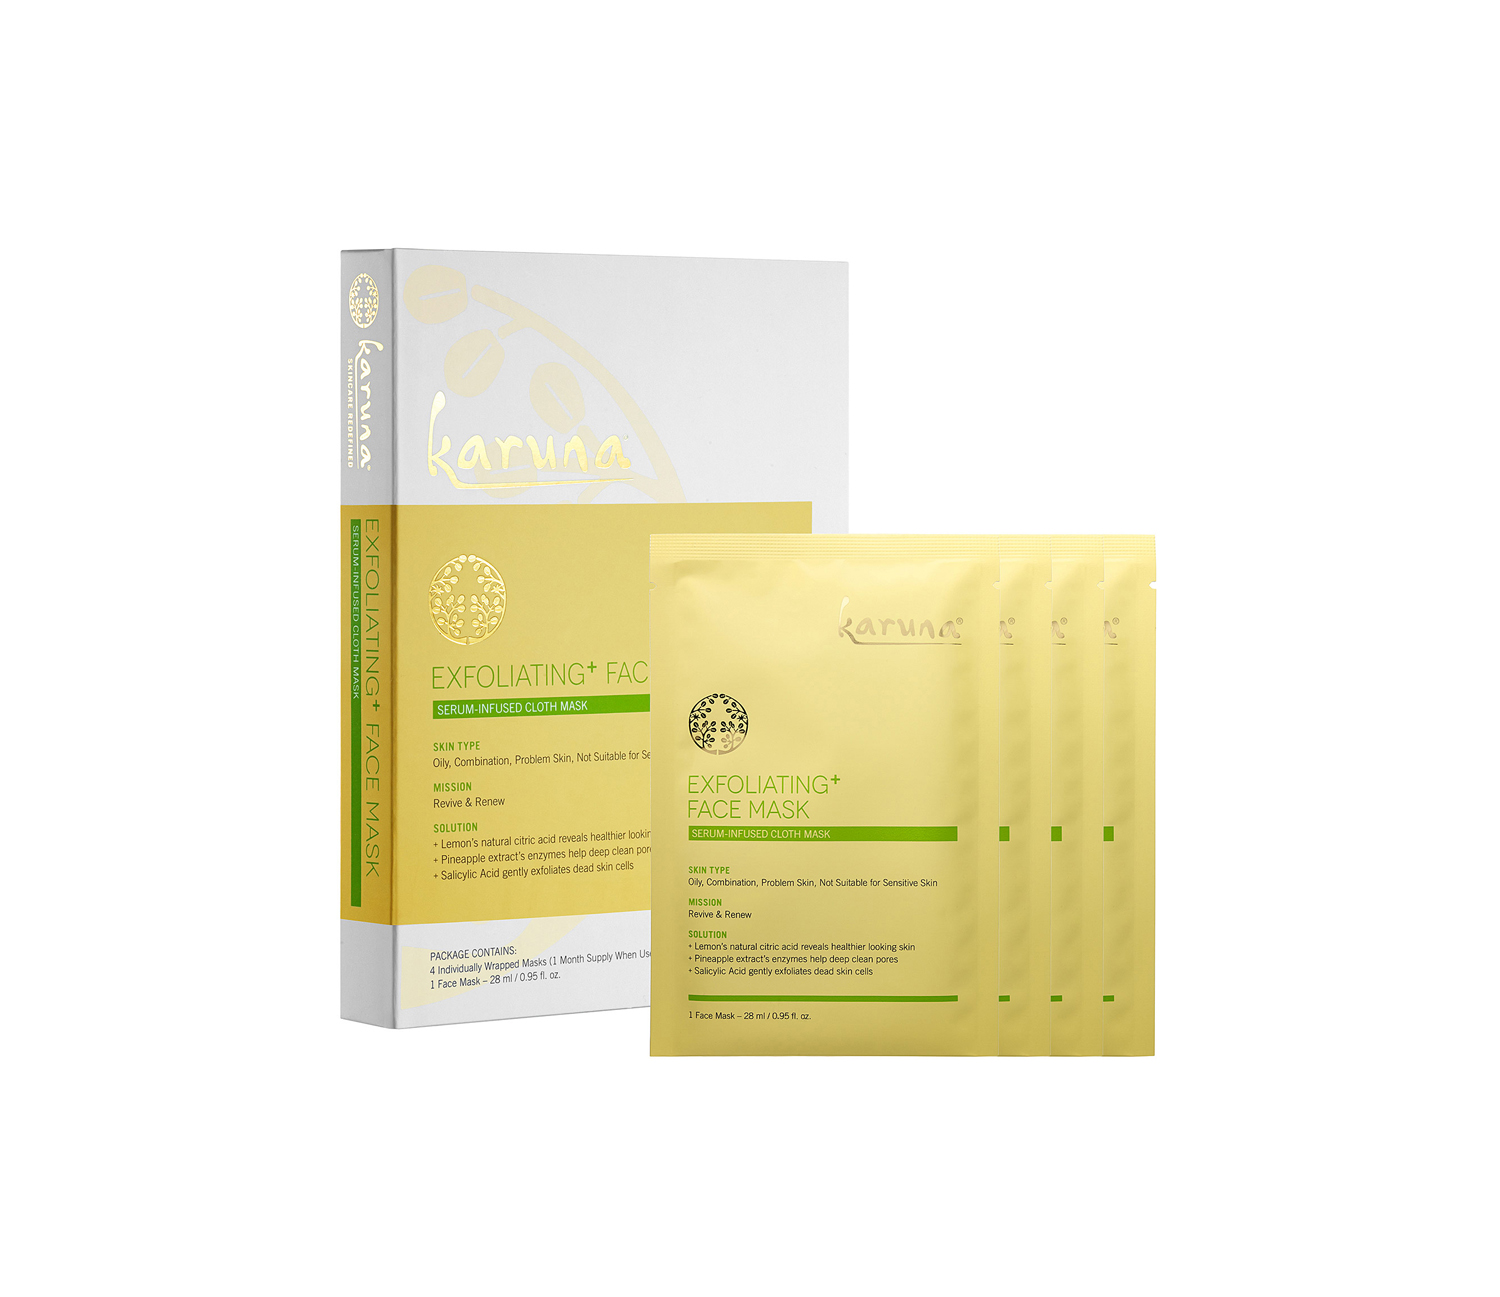 Karuna Exfoliating + Face Mask